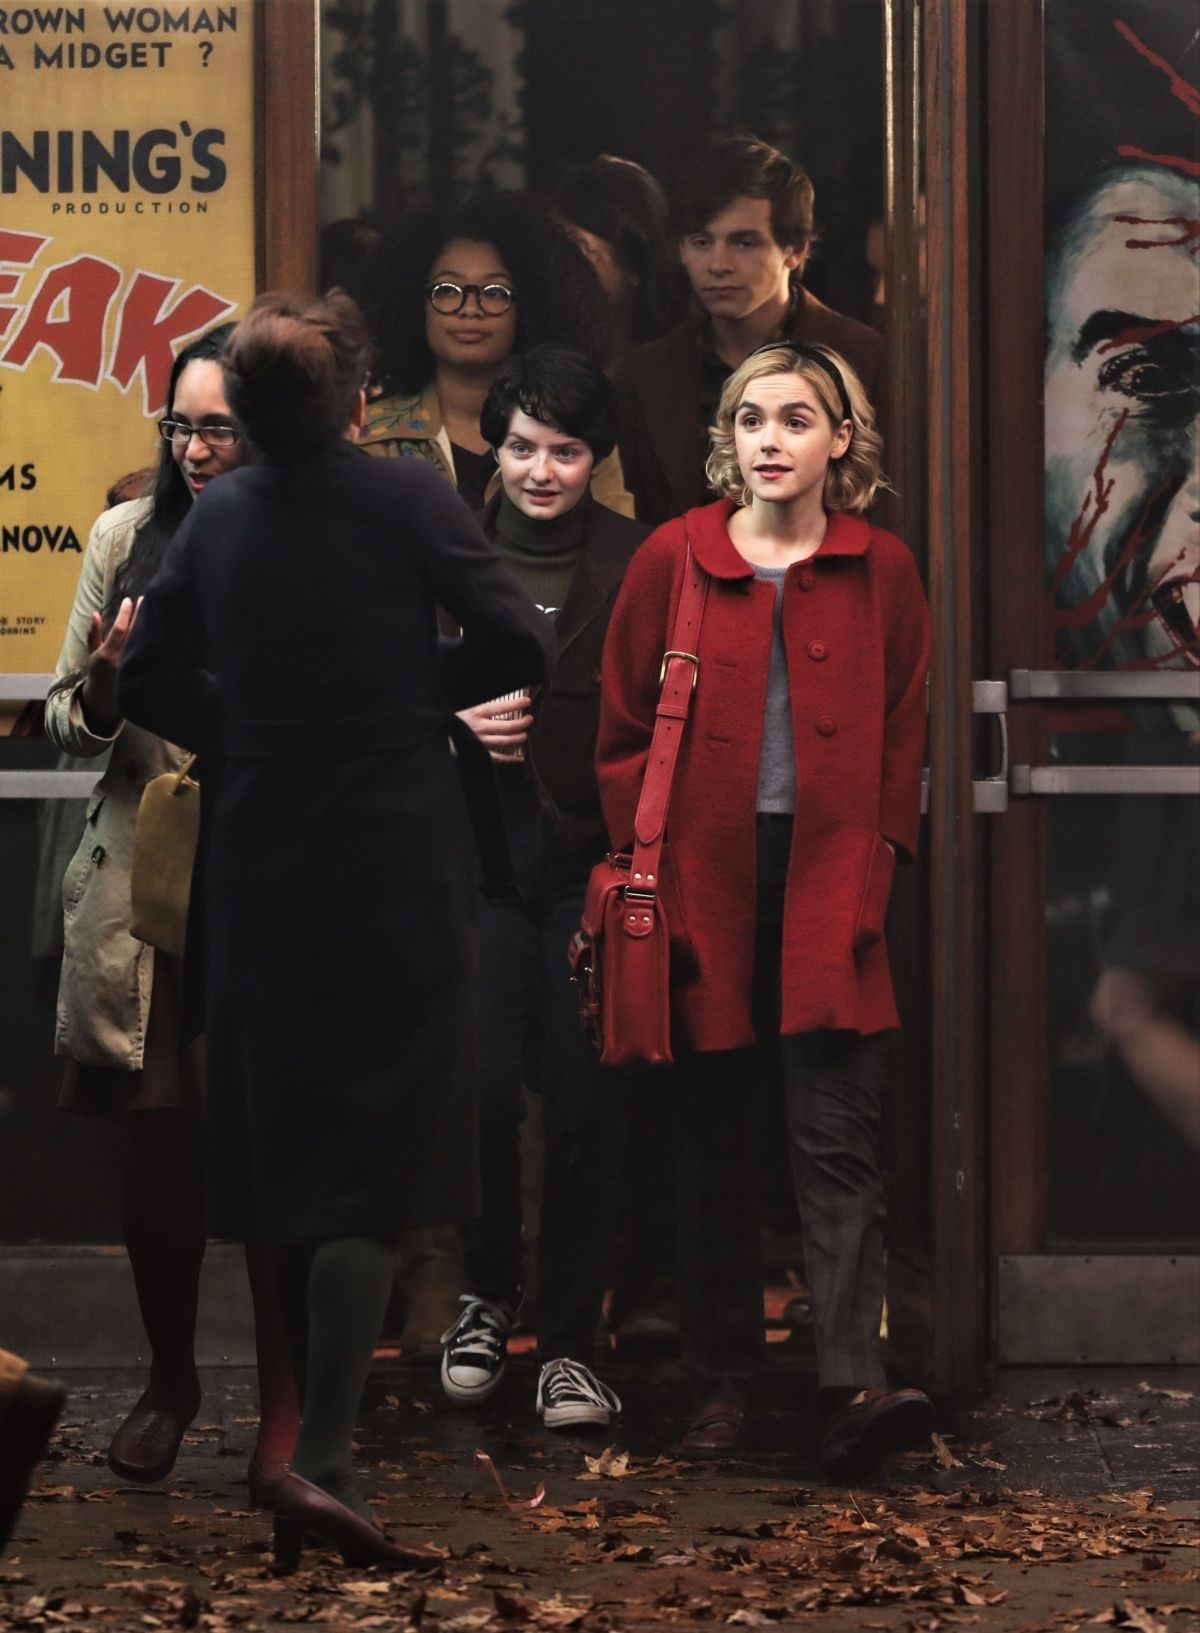 Kiernan Shipka On The Set Of The Chilling Adventures Of